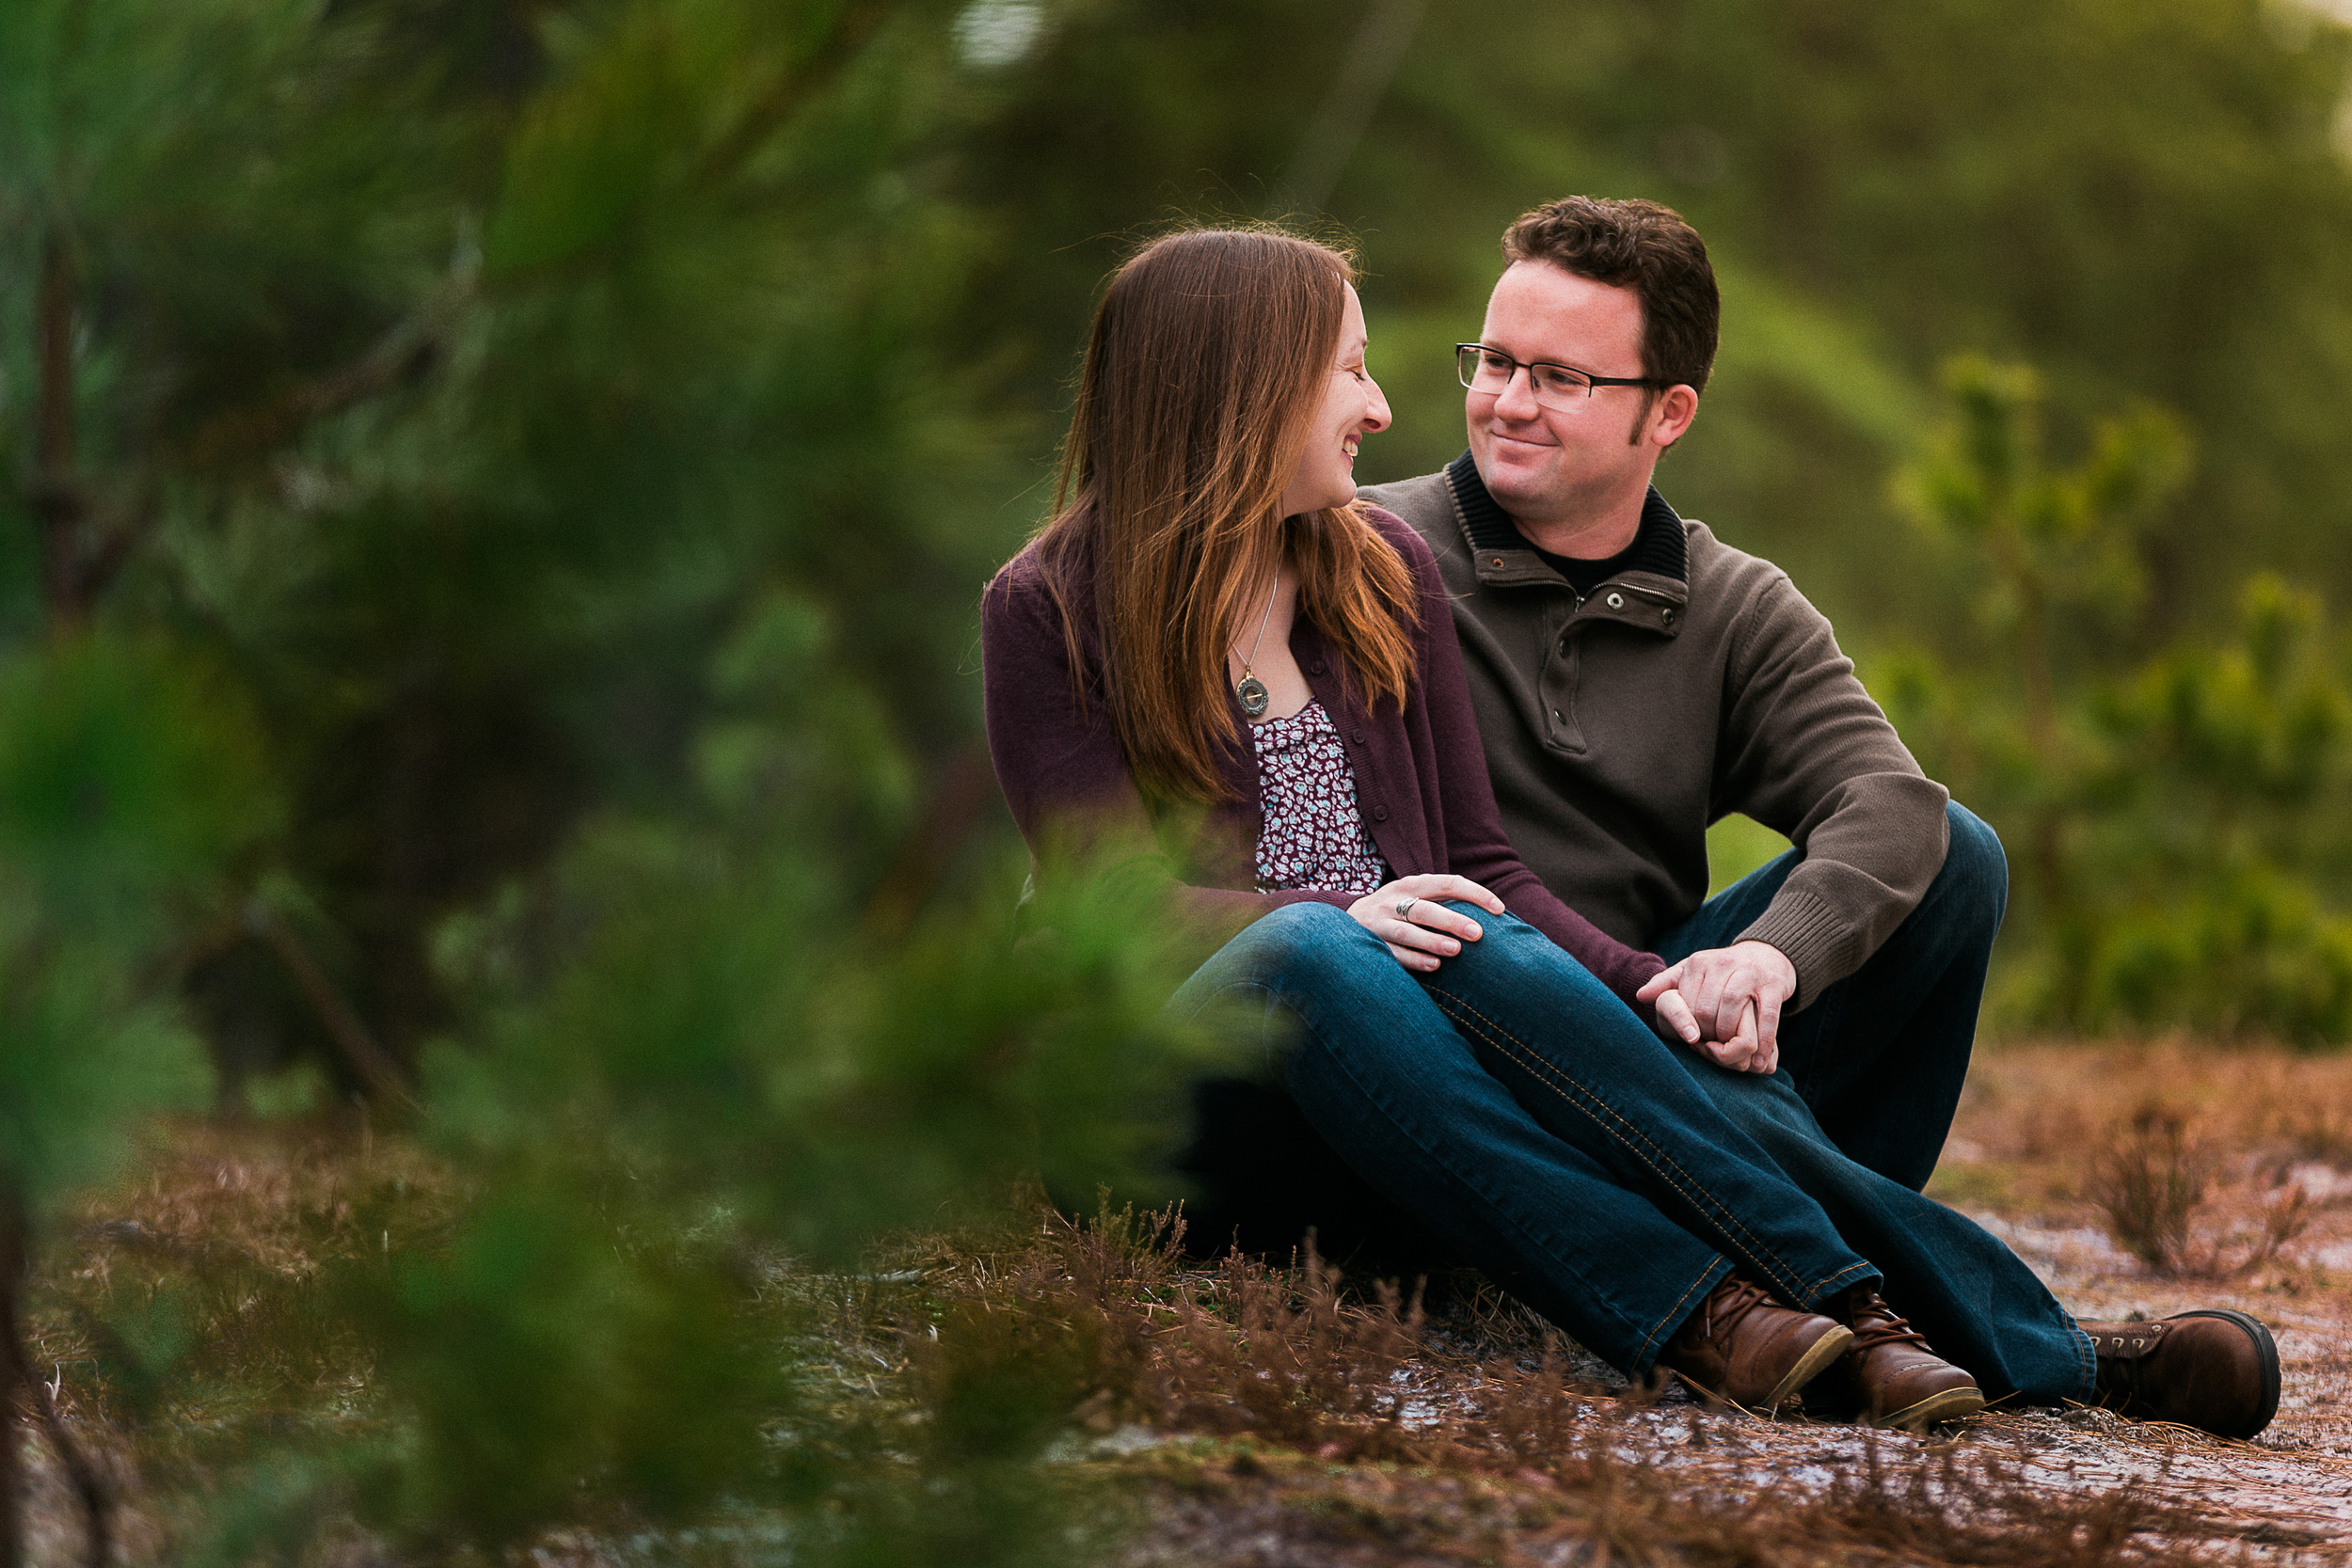 Samantha and Joe Engagement WRH Photography Depford NJ-20.jpg